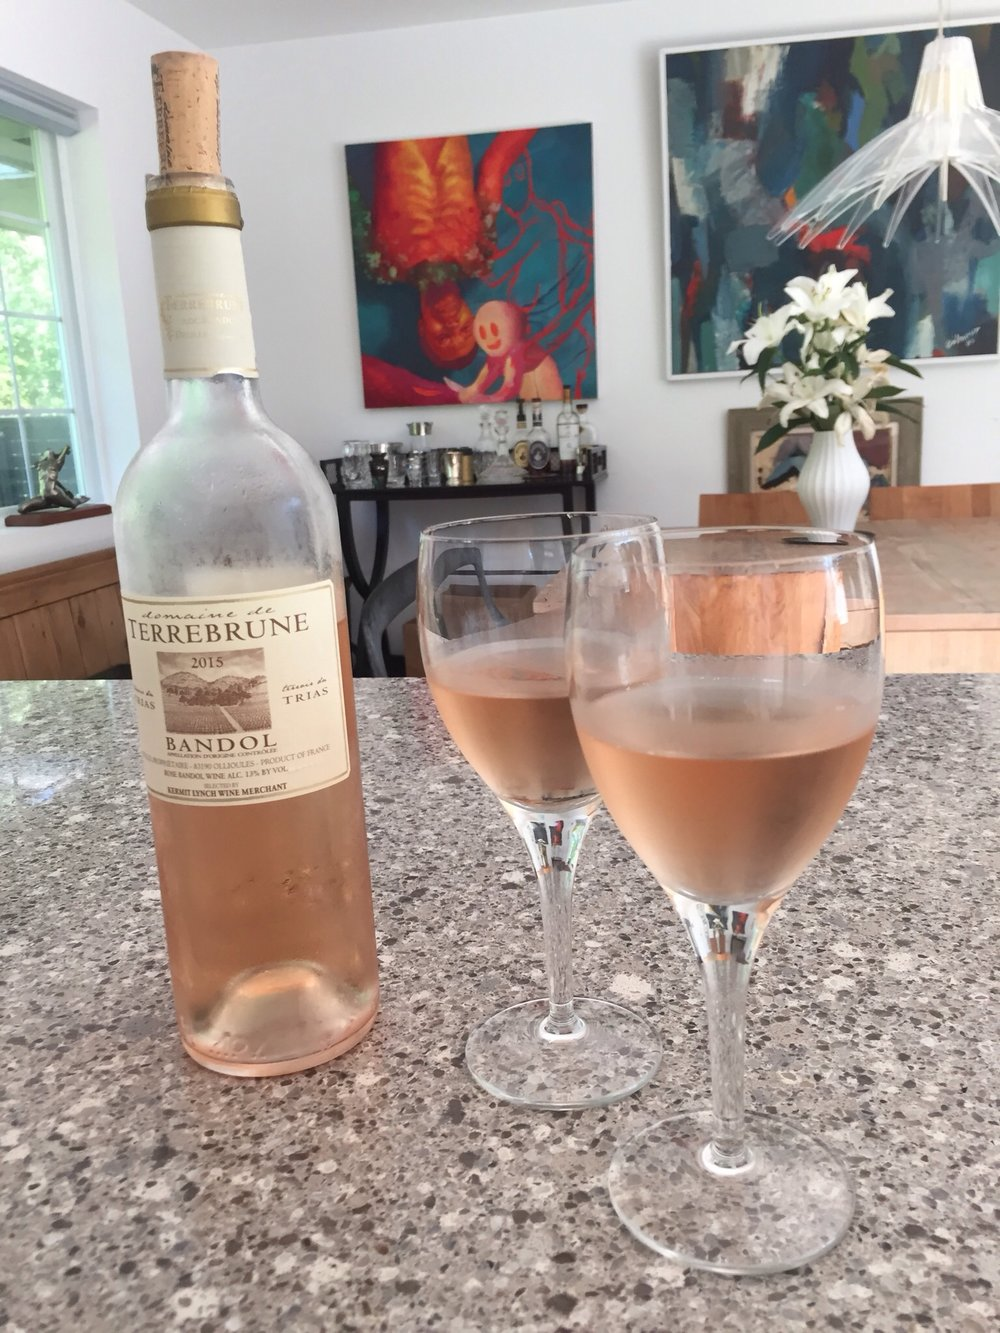 Relaxing by Phyllis's pool in Bridgehampton was the perfect setting for sampling rosés and we loved this one - medium dry, light fruit notes, floral bouquet and such a pretty color!